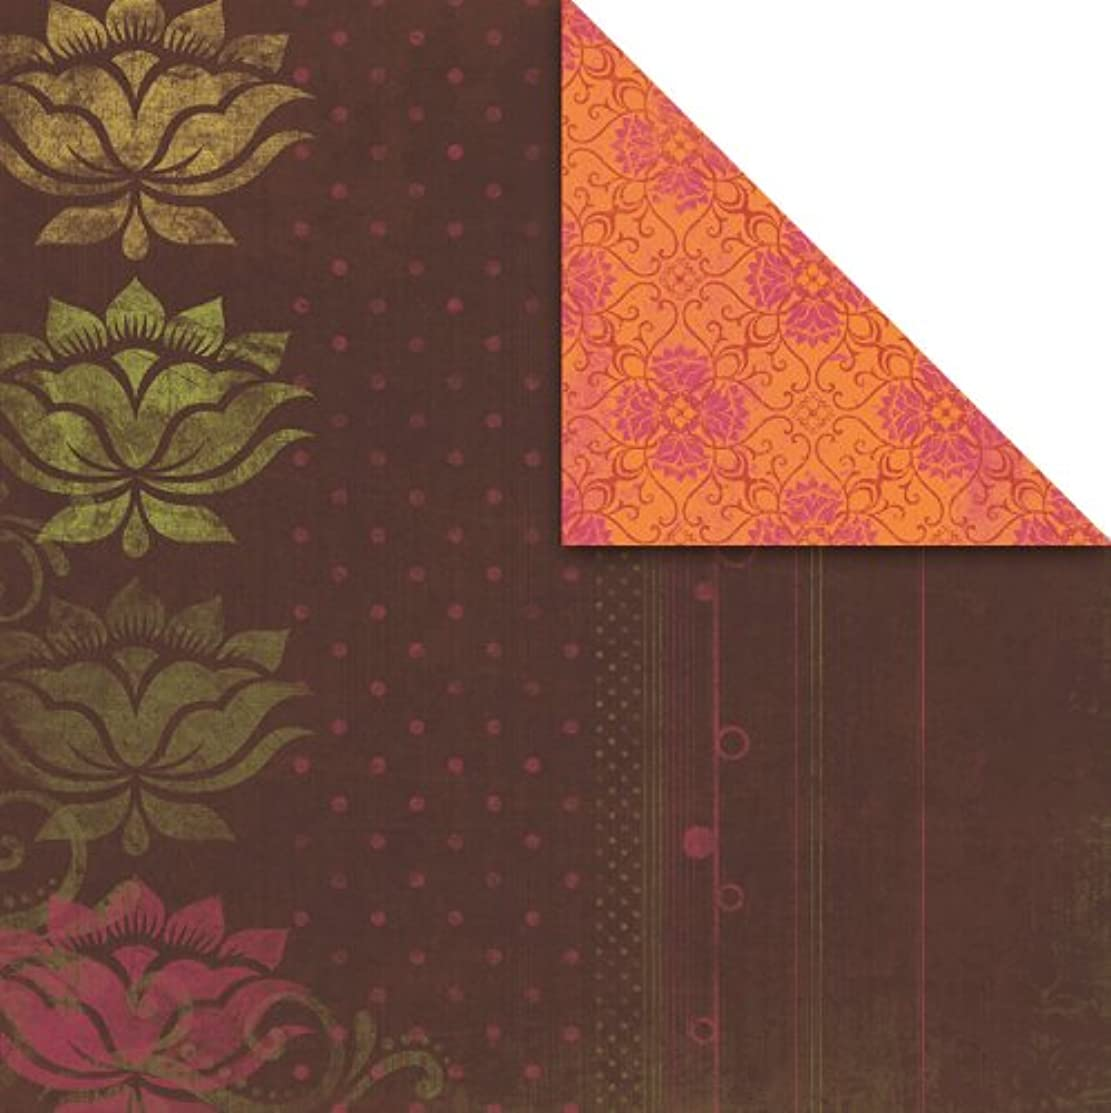 Prima 870072 12 by 12-Inch Urban Cosmos Double Sided Cardstock Paper, Village, 25-Pack